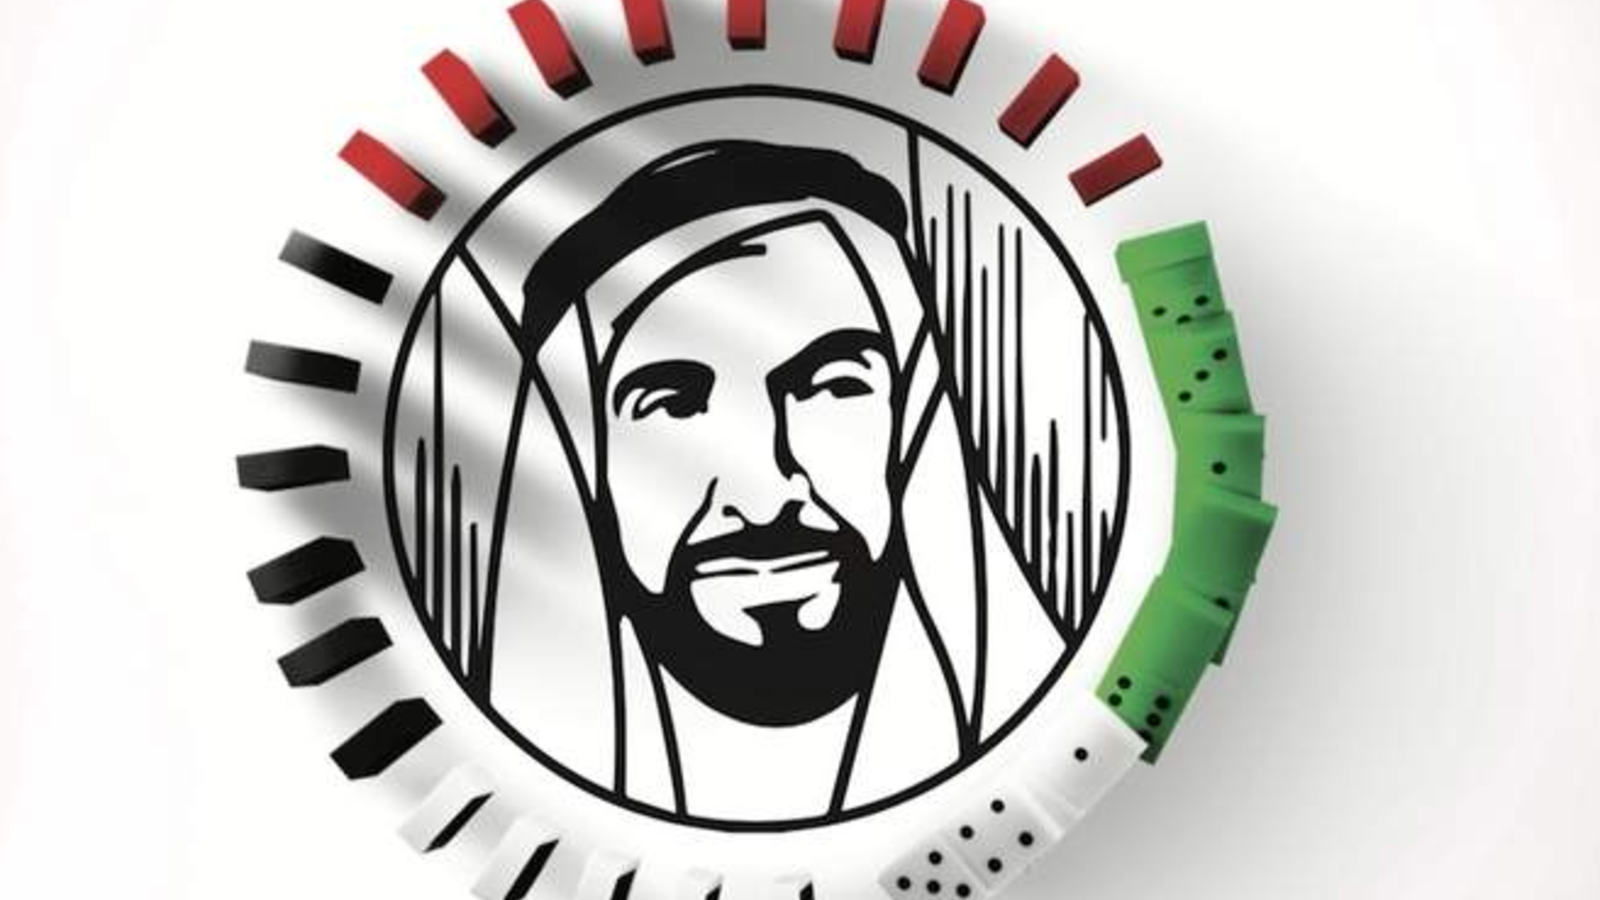 Around 95,000 dominoes will be collapsed to reveal the Year of Zayed logo. (KhT)